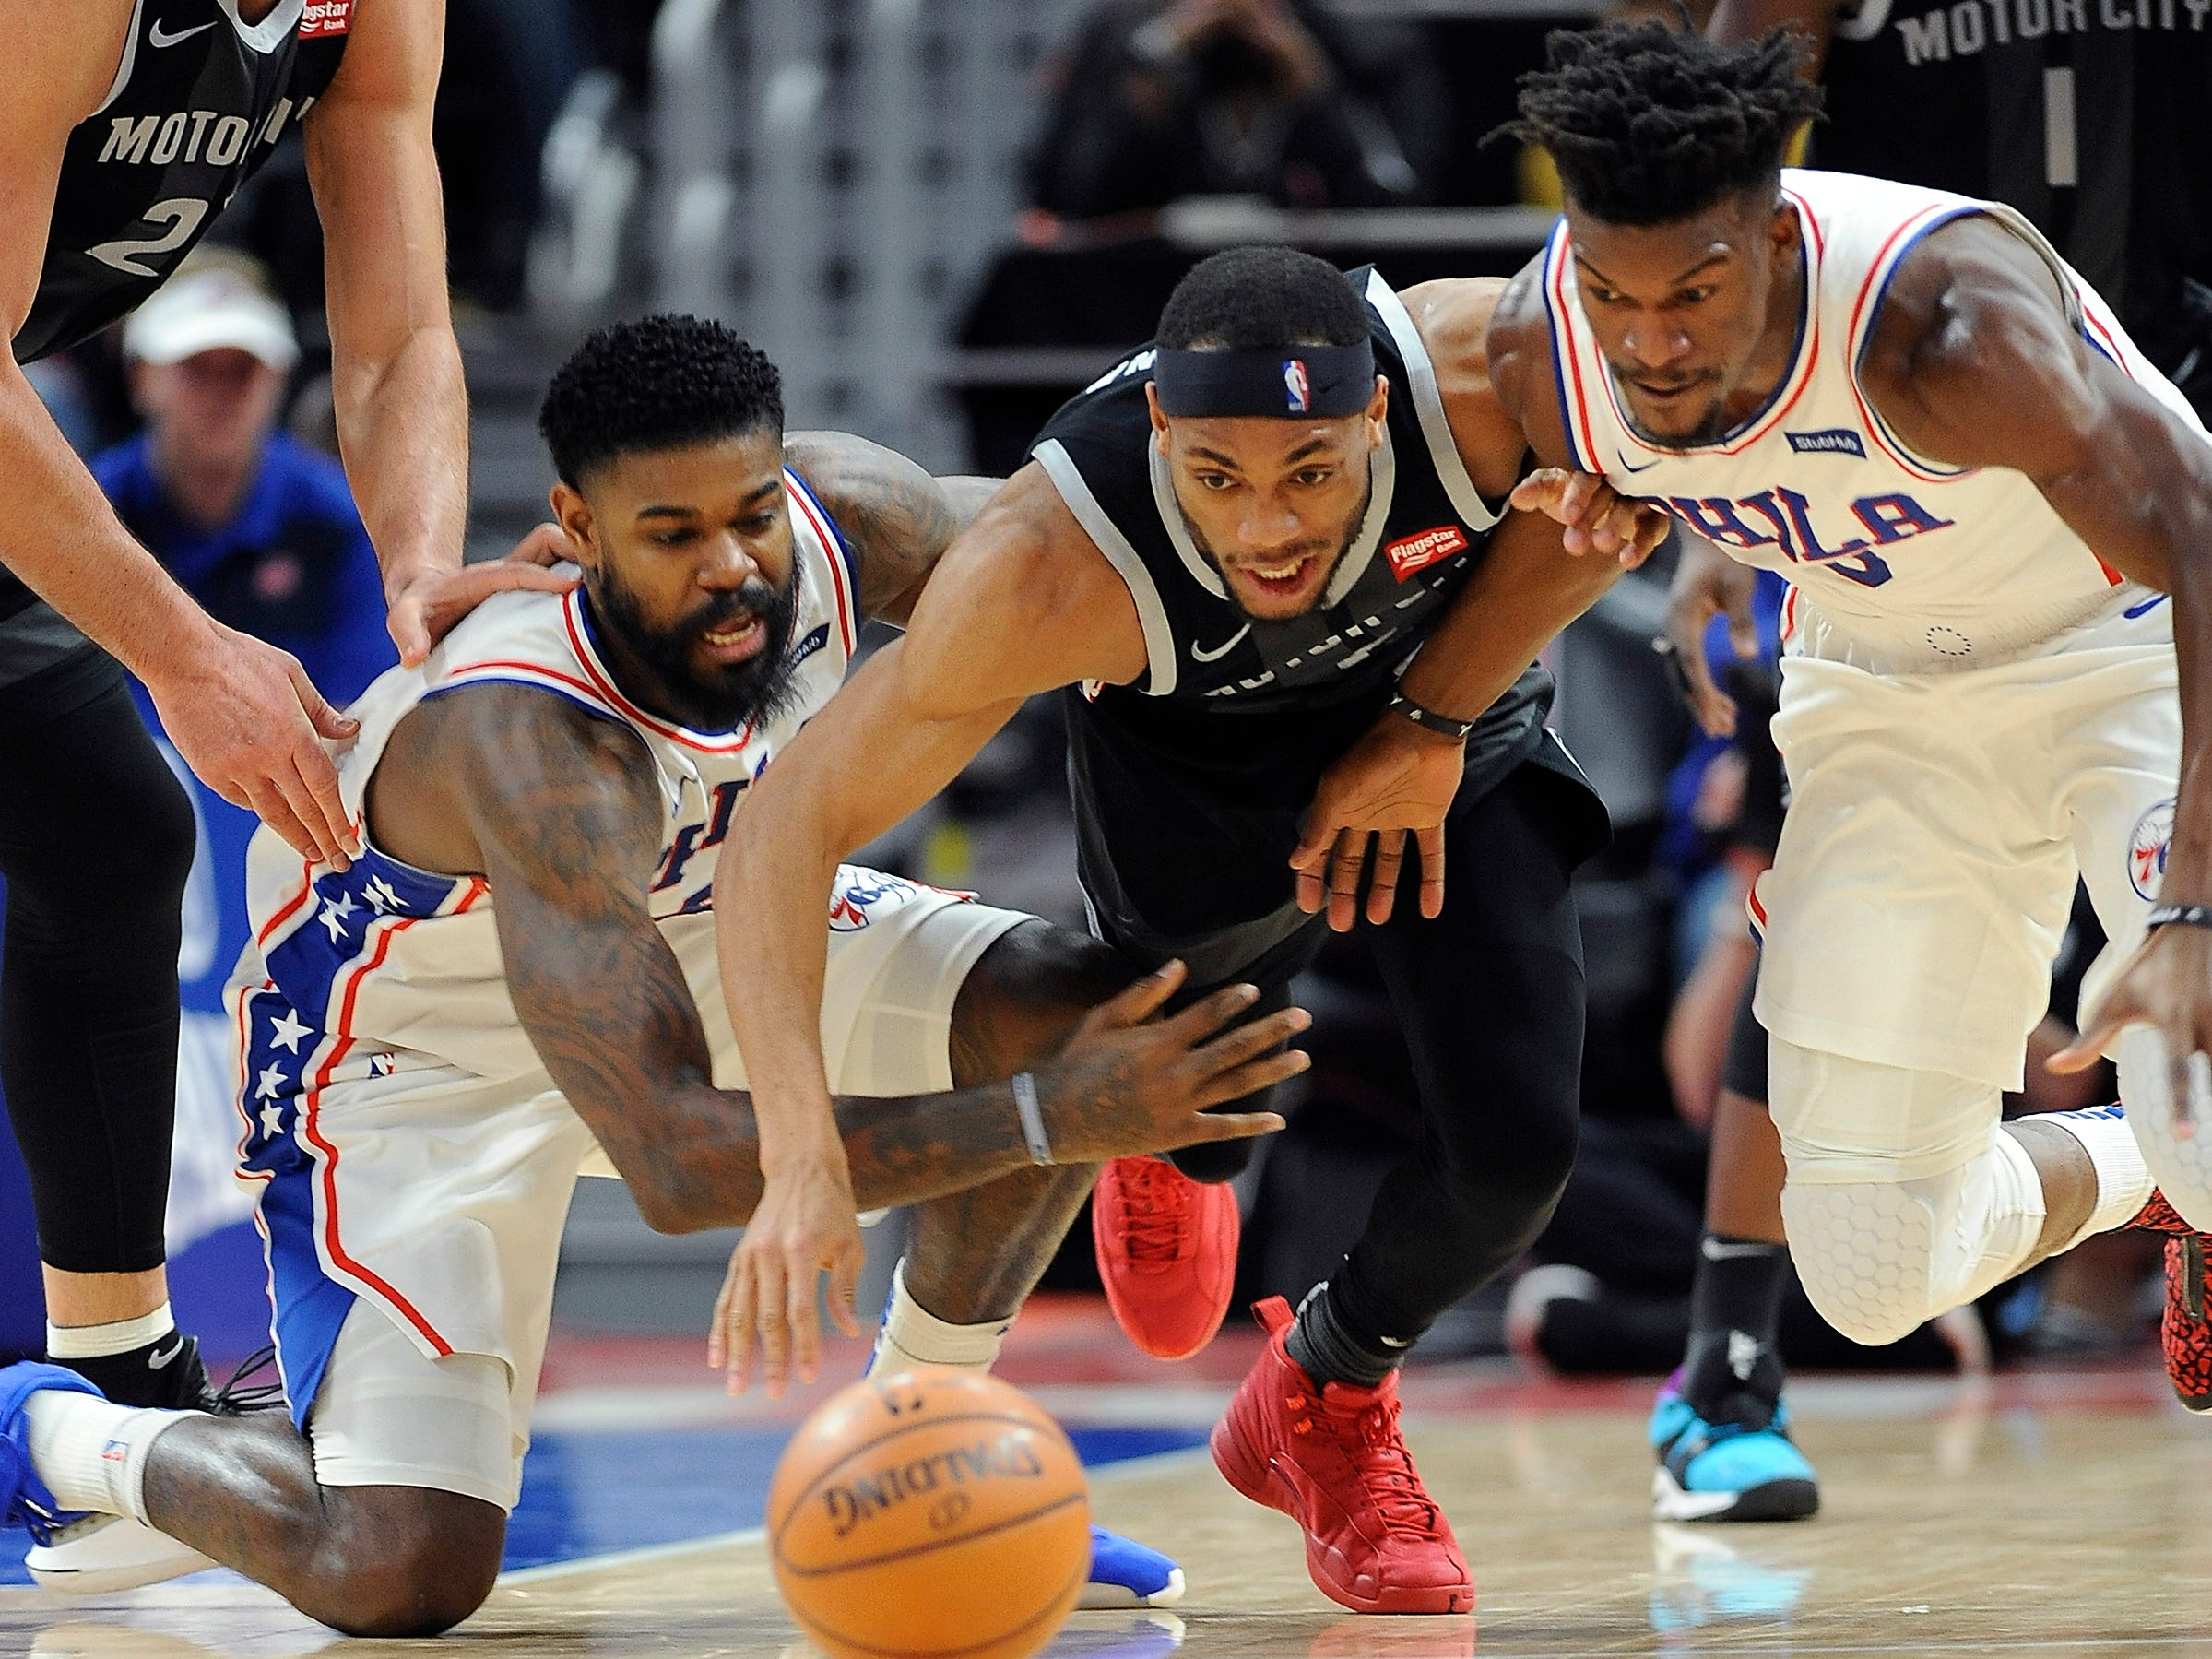 Pistons' Bruce Brown, (c), battles 76ers' l-r, Amir Johnson and Jimmy Butler for a loose ball in the second quarter.